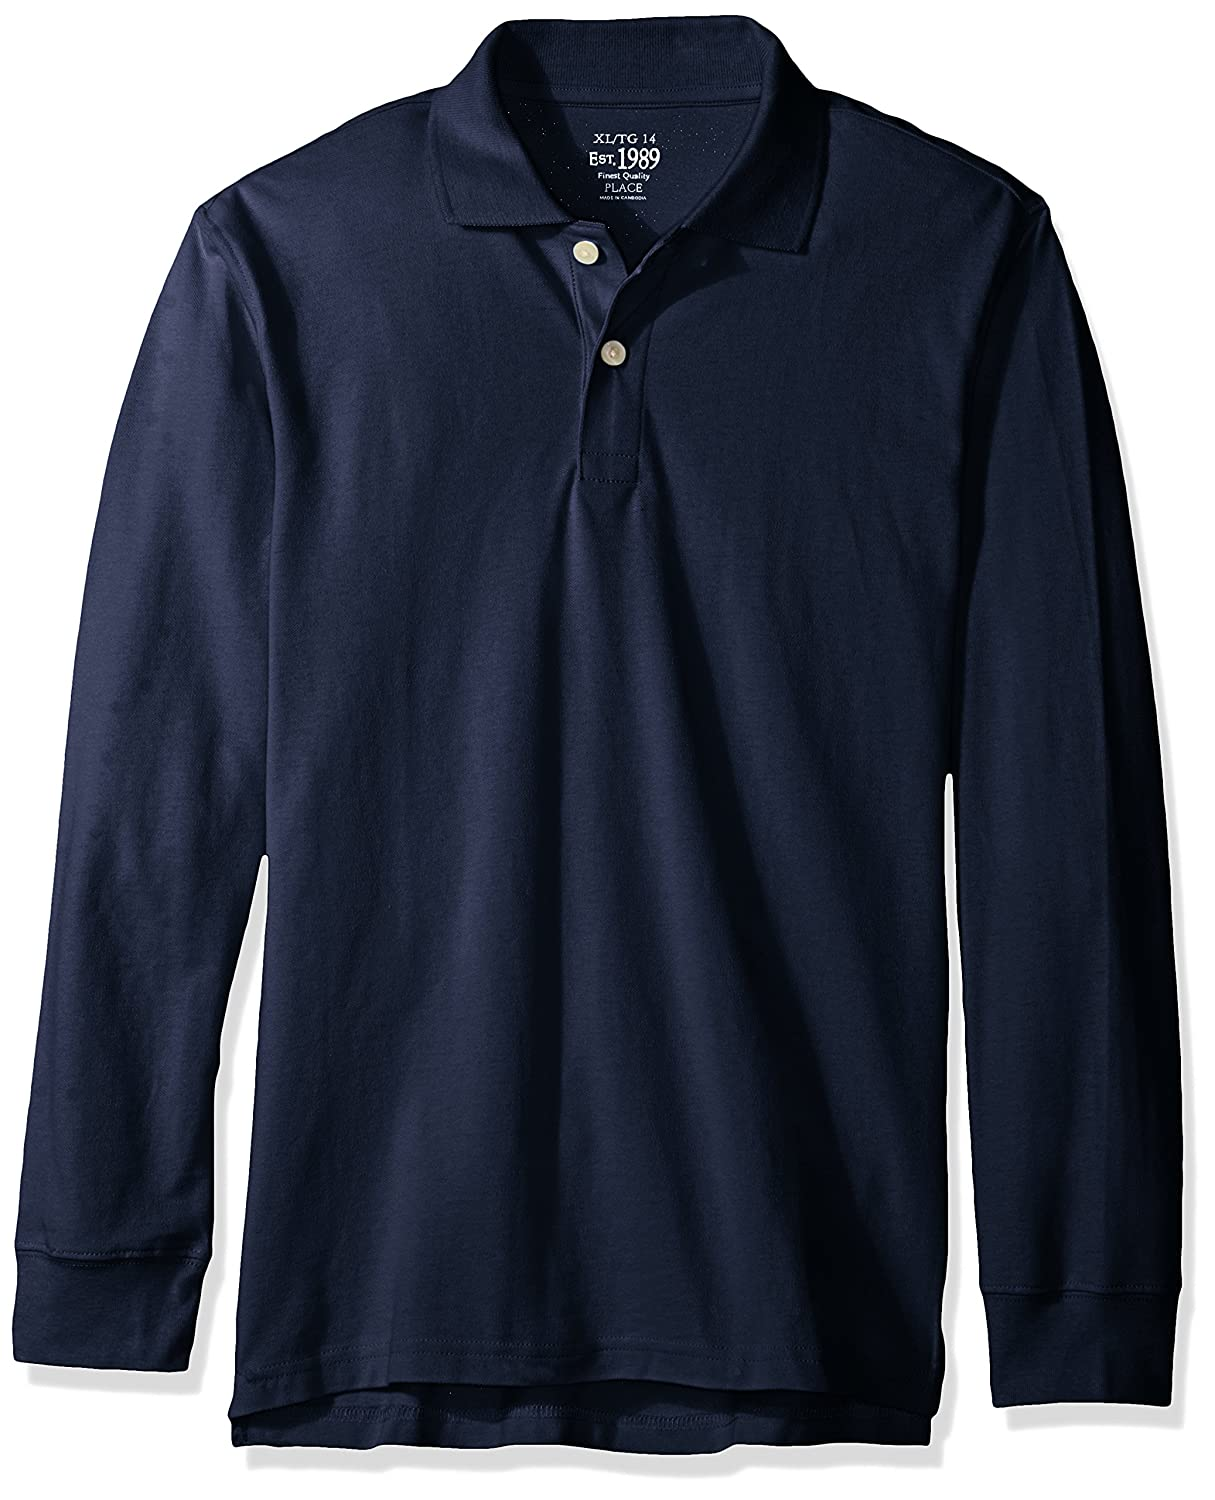 The Children's Place Boys' Long Sleeve Uniform Polo 2045101 2046341 2062134. 2062120